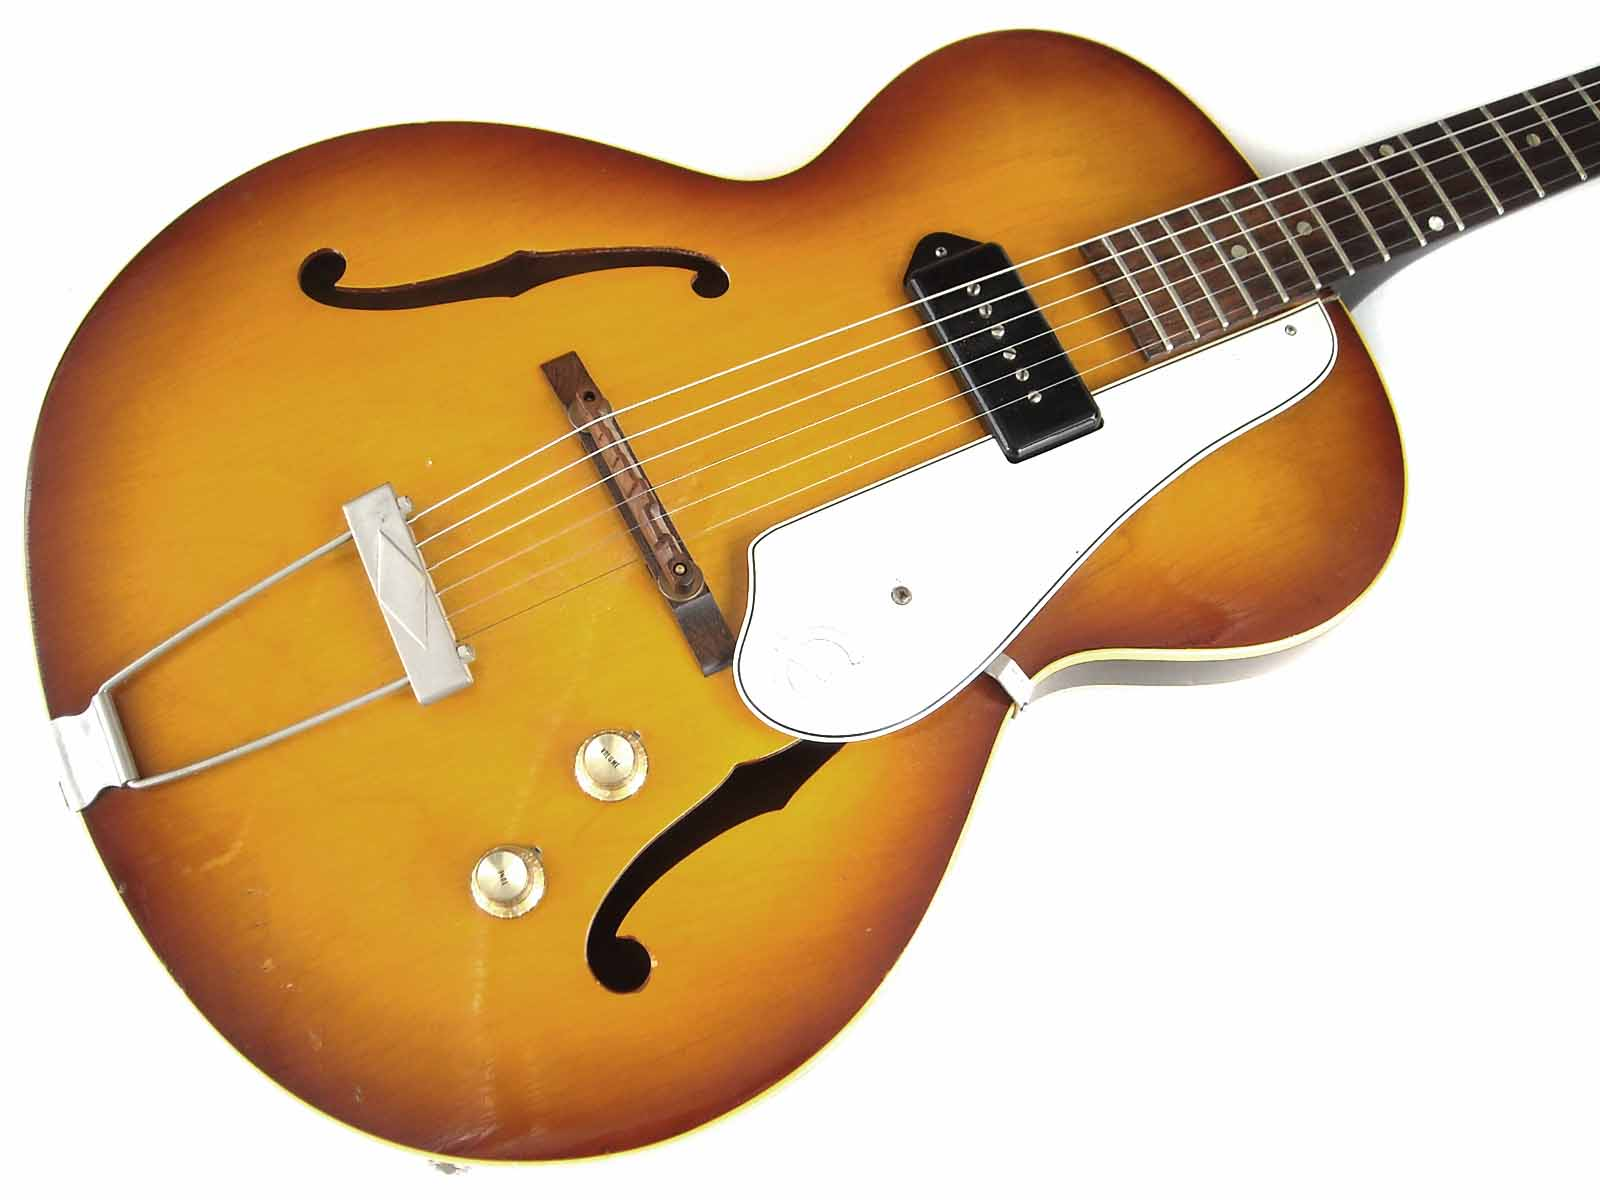 epiphone century 1965 sunburst guitar for sale wutzdog guitars. Black Bedroom Furniture Sets. Home Design Ideas